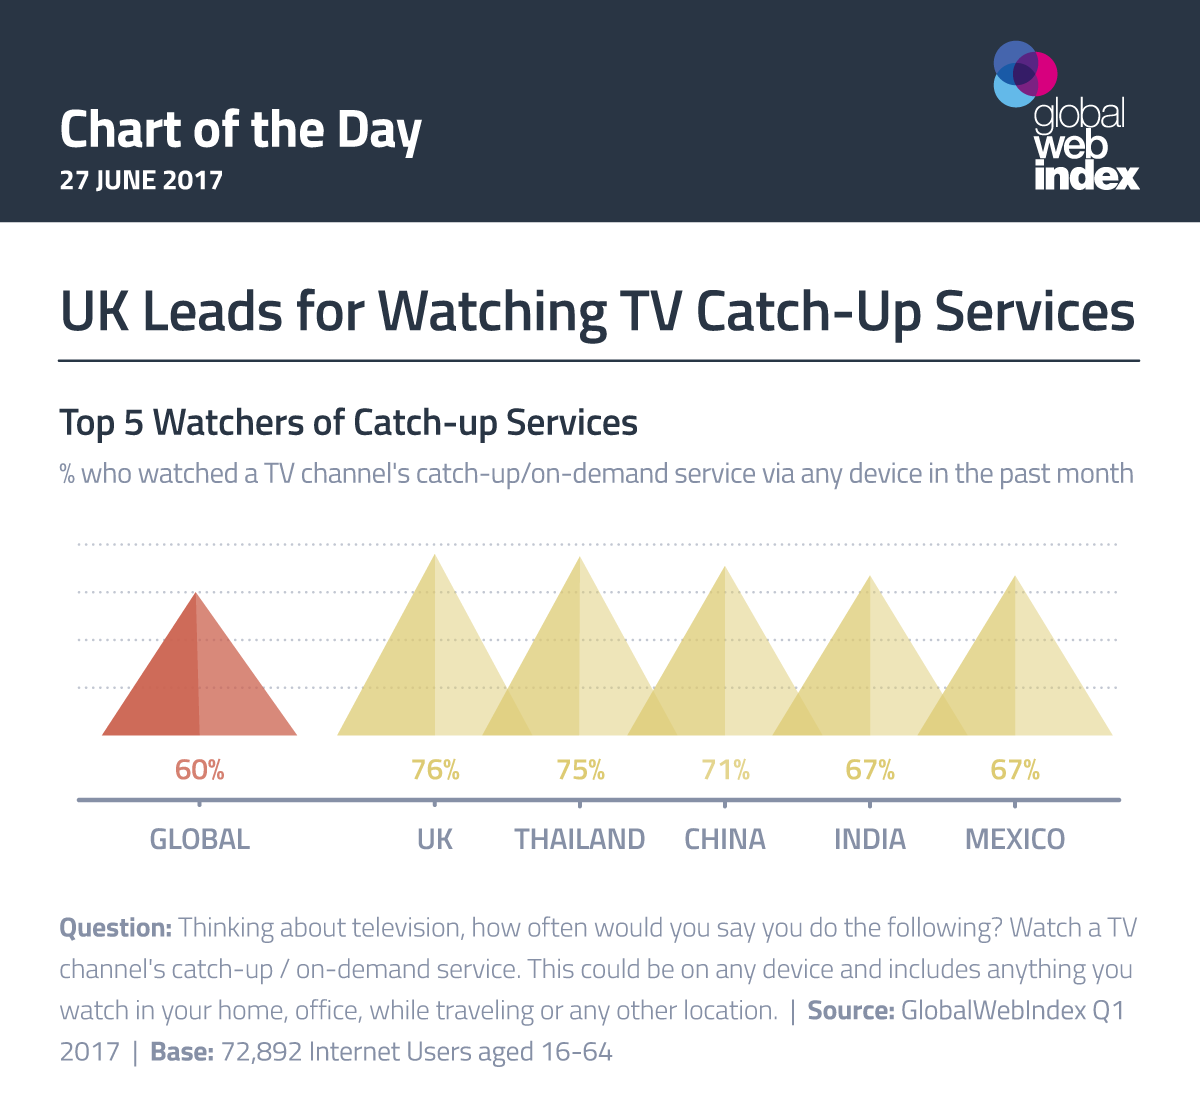 UK Leads for Watching TV Catch-Up Services